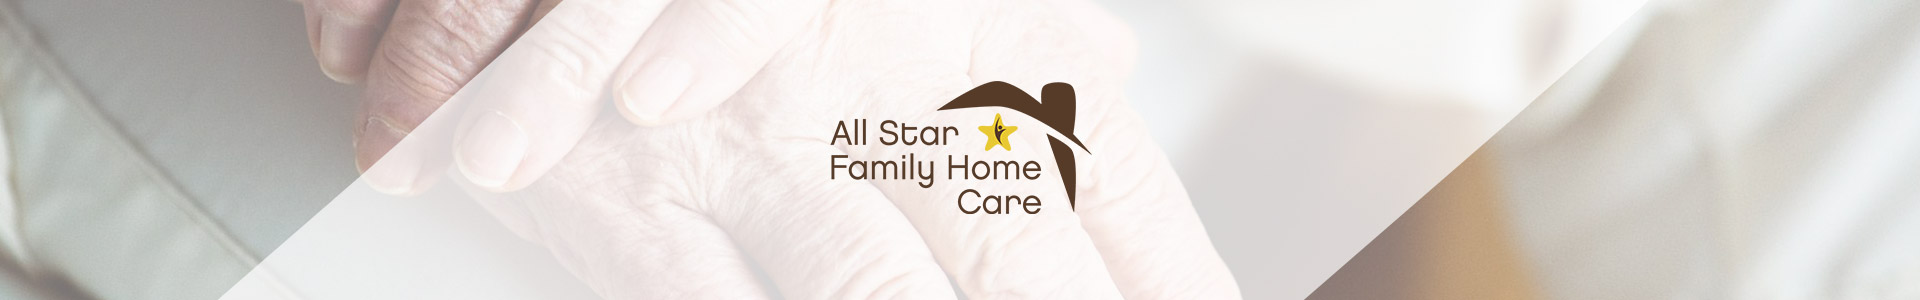 All Star Family Home Care Banner